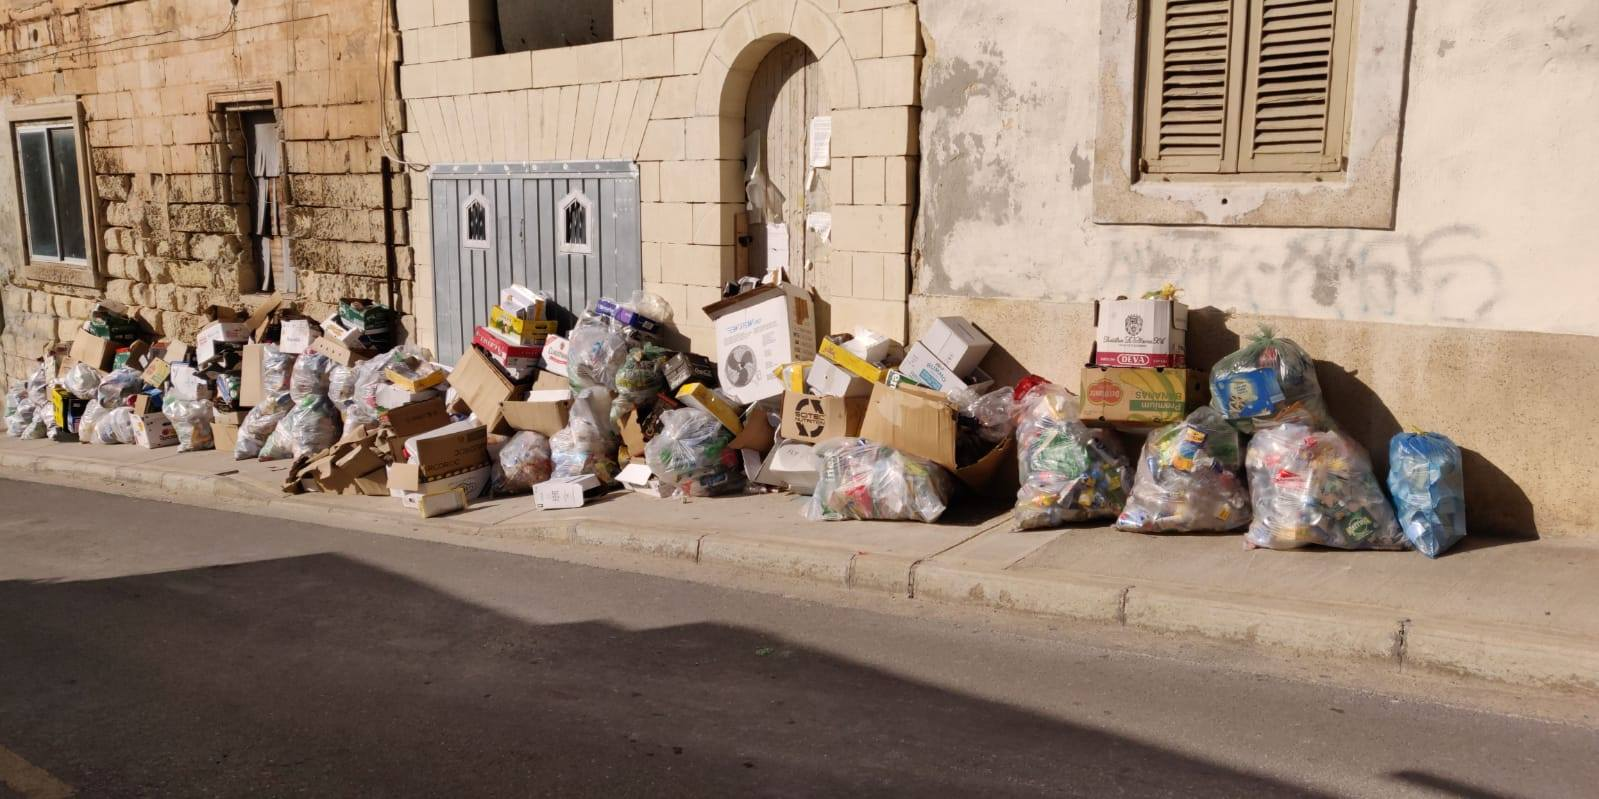 Street in Sliema this morning - a sight too common around Malta